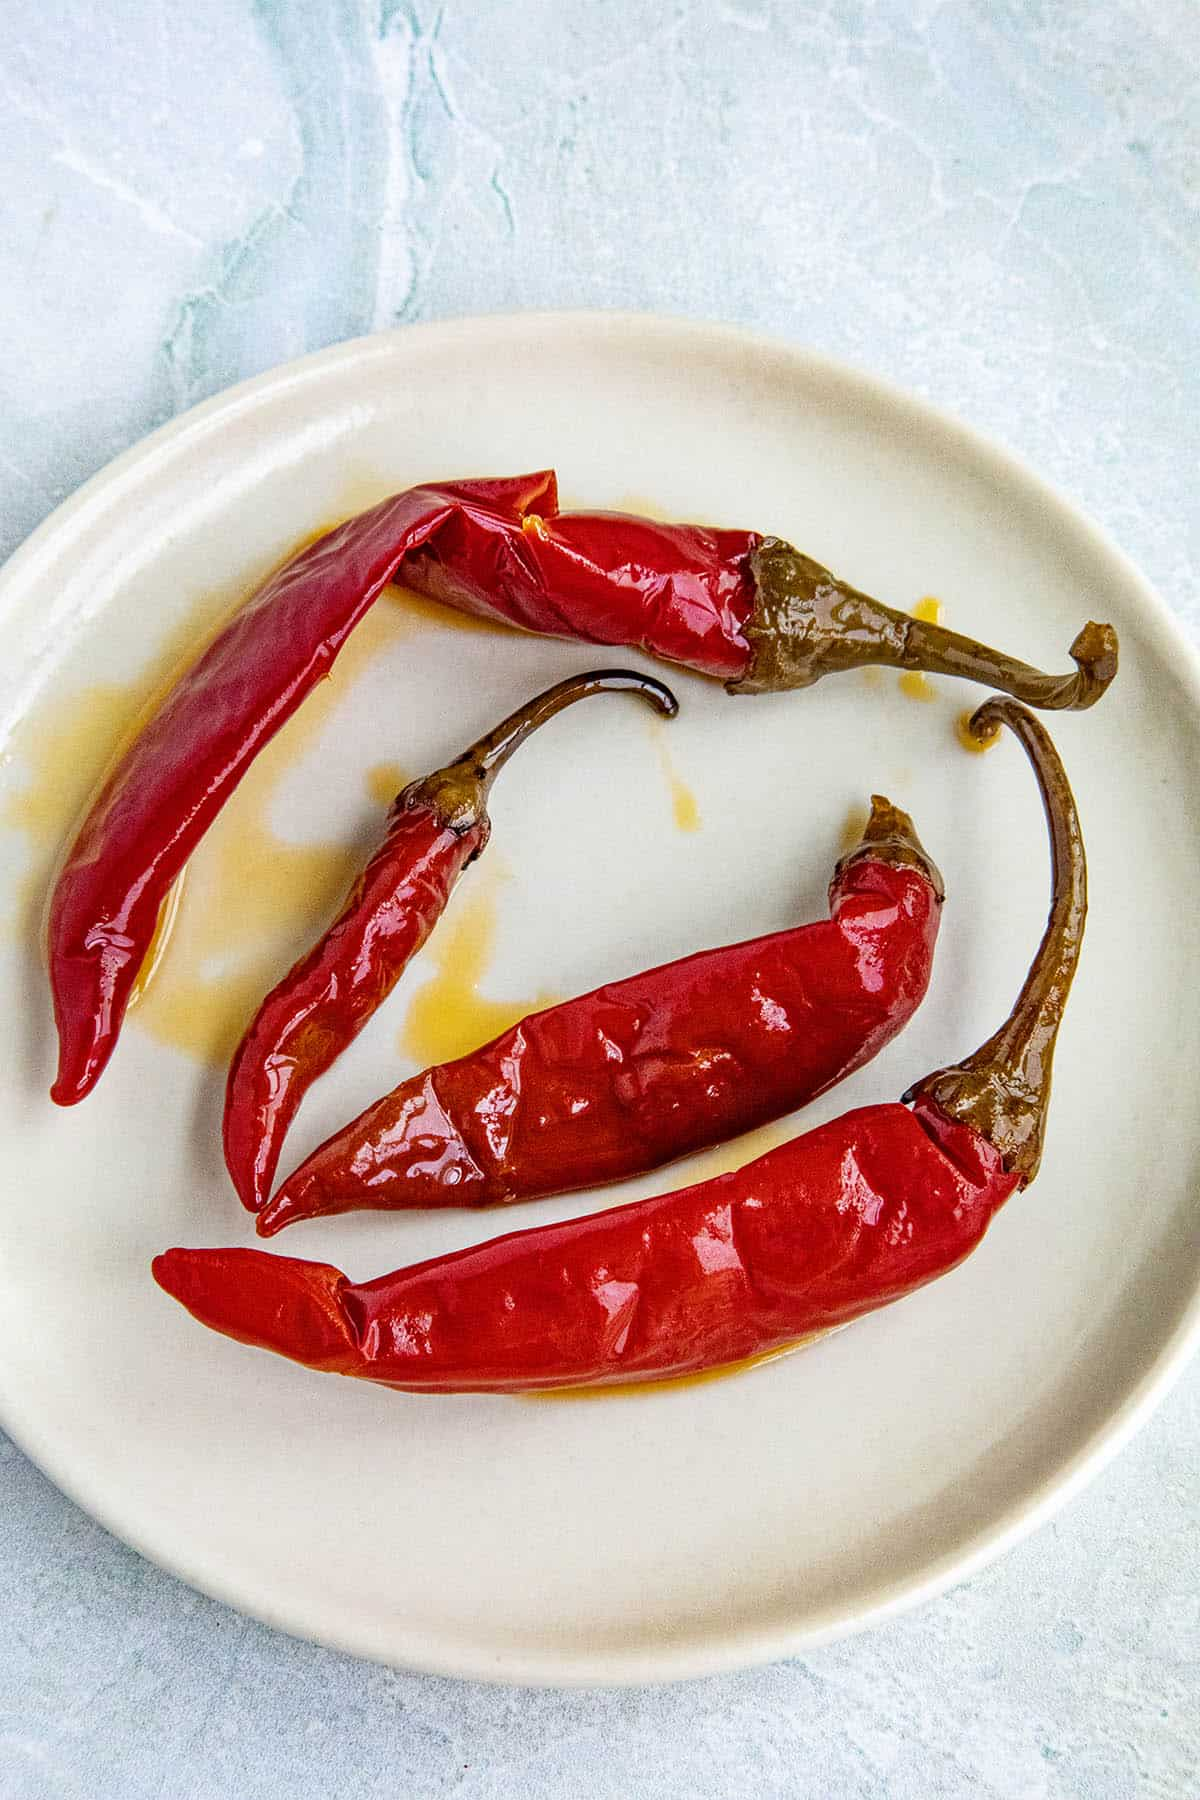 Calabrian Chili: Spicy Italian Peppers